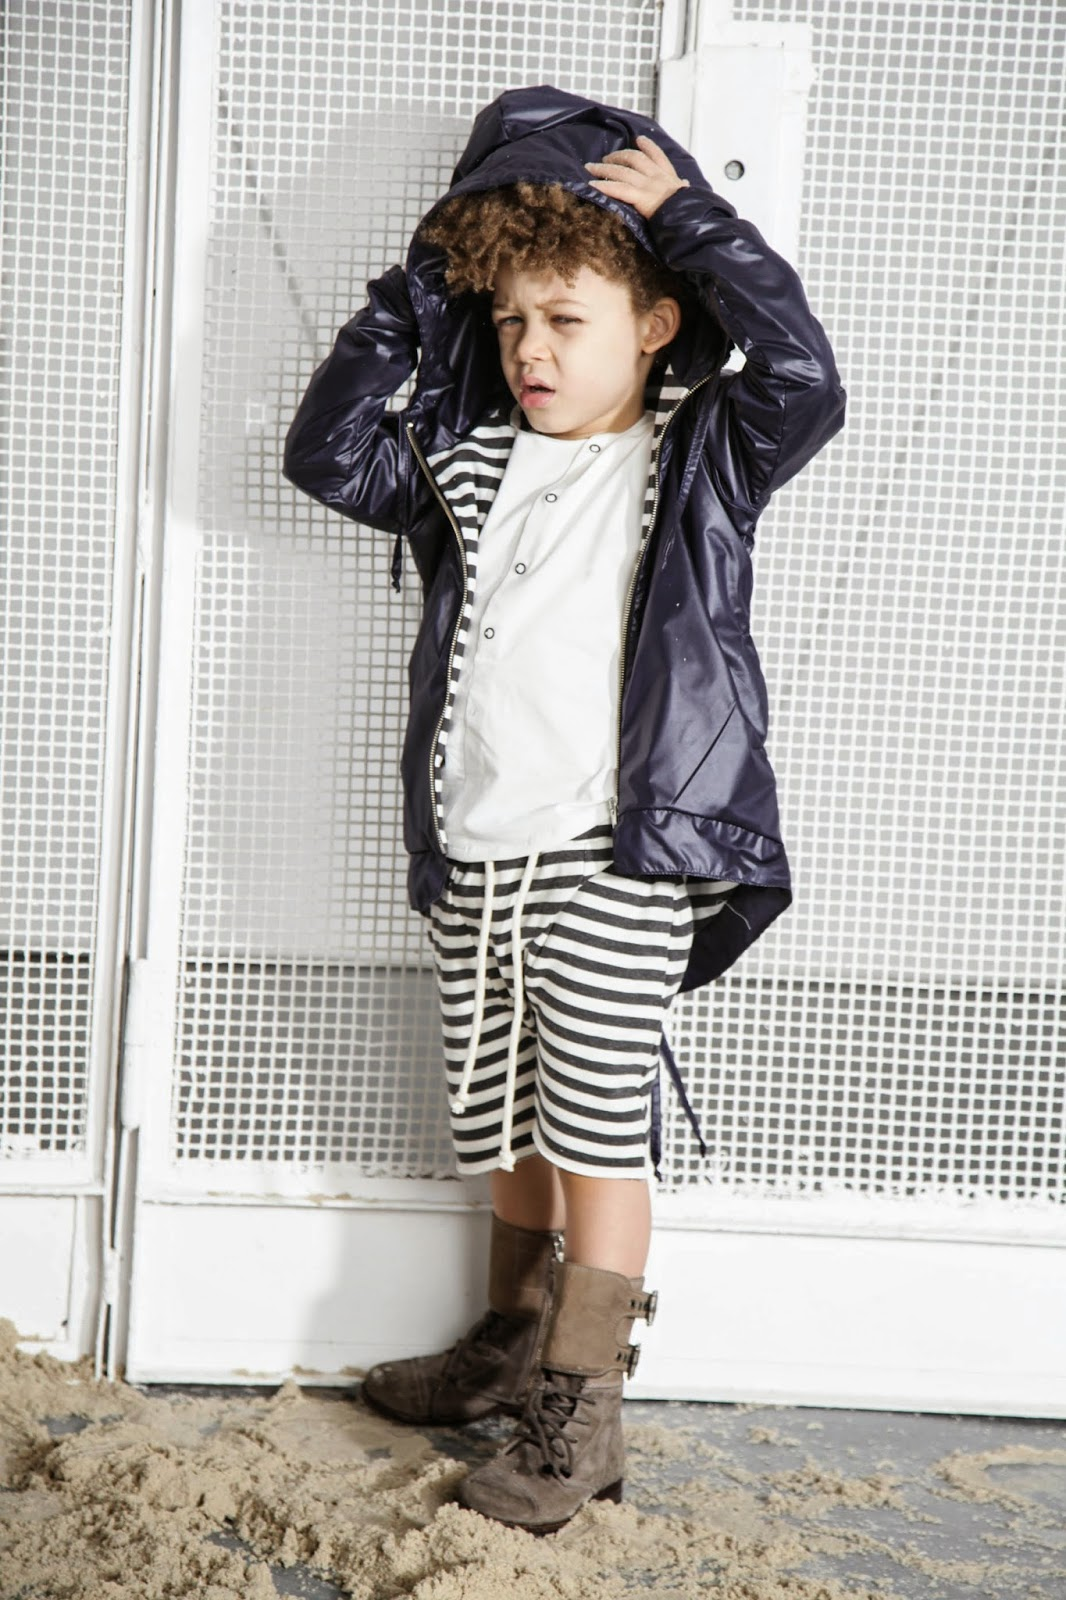 Kloo by Booso - Polish kids fashion spring-summer 2015 - mix of materials